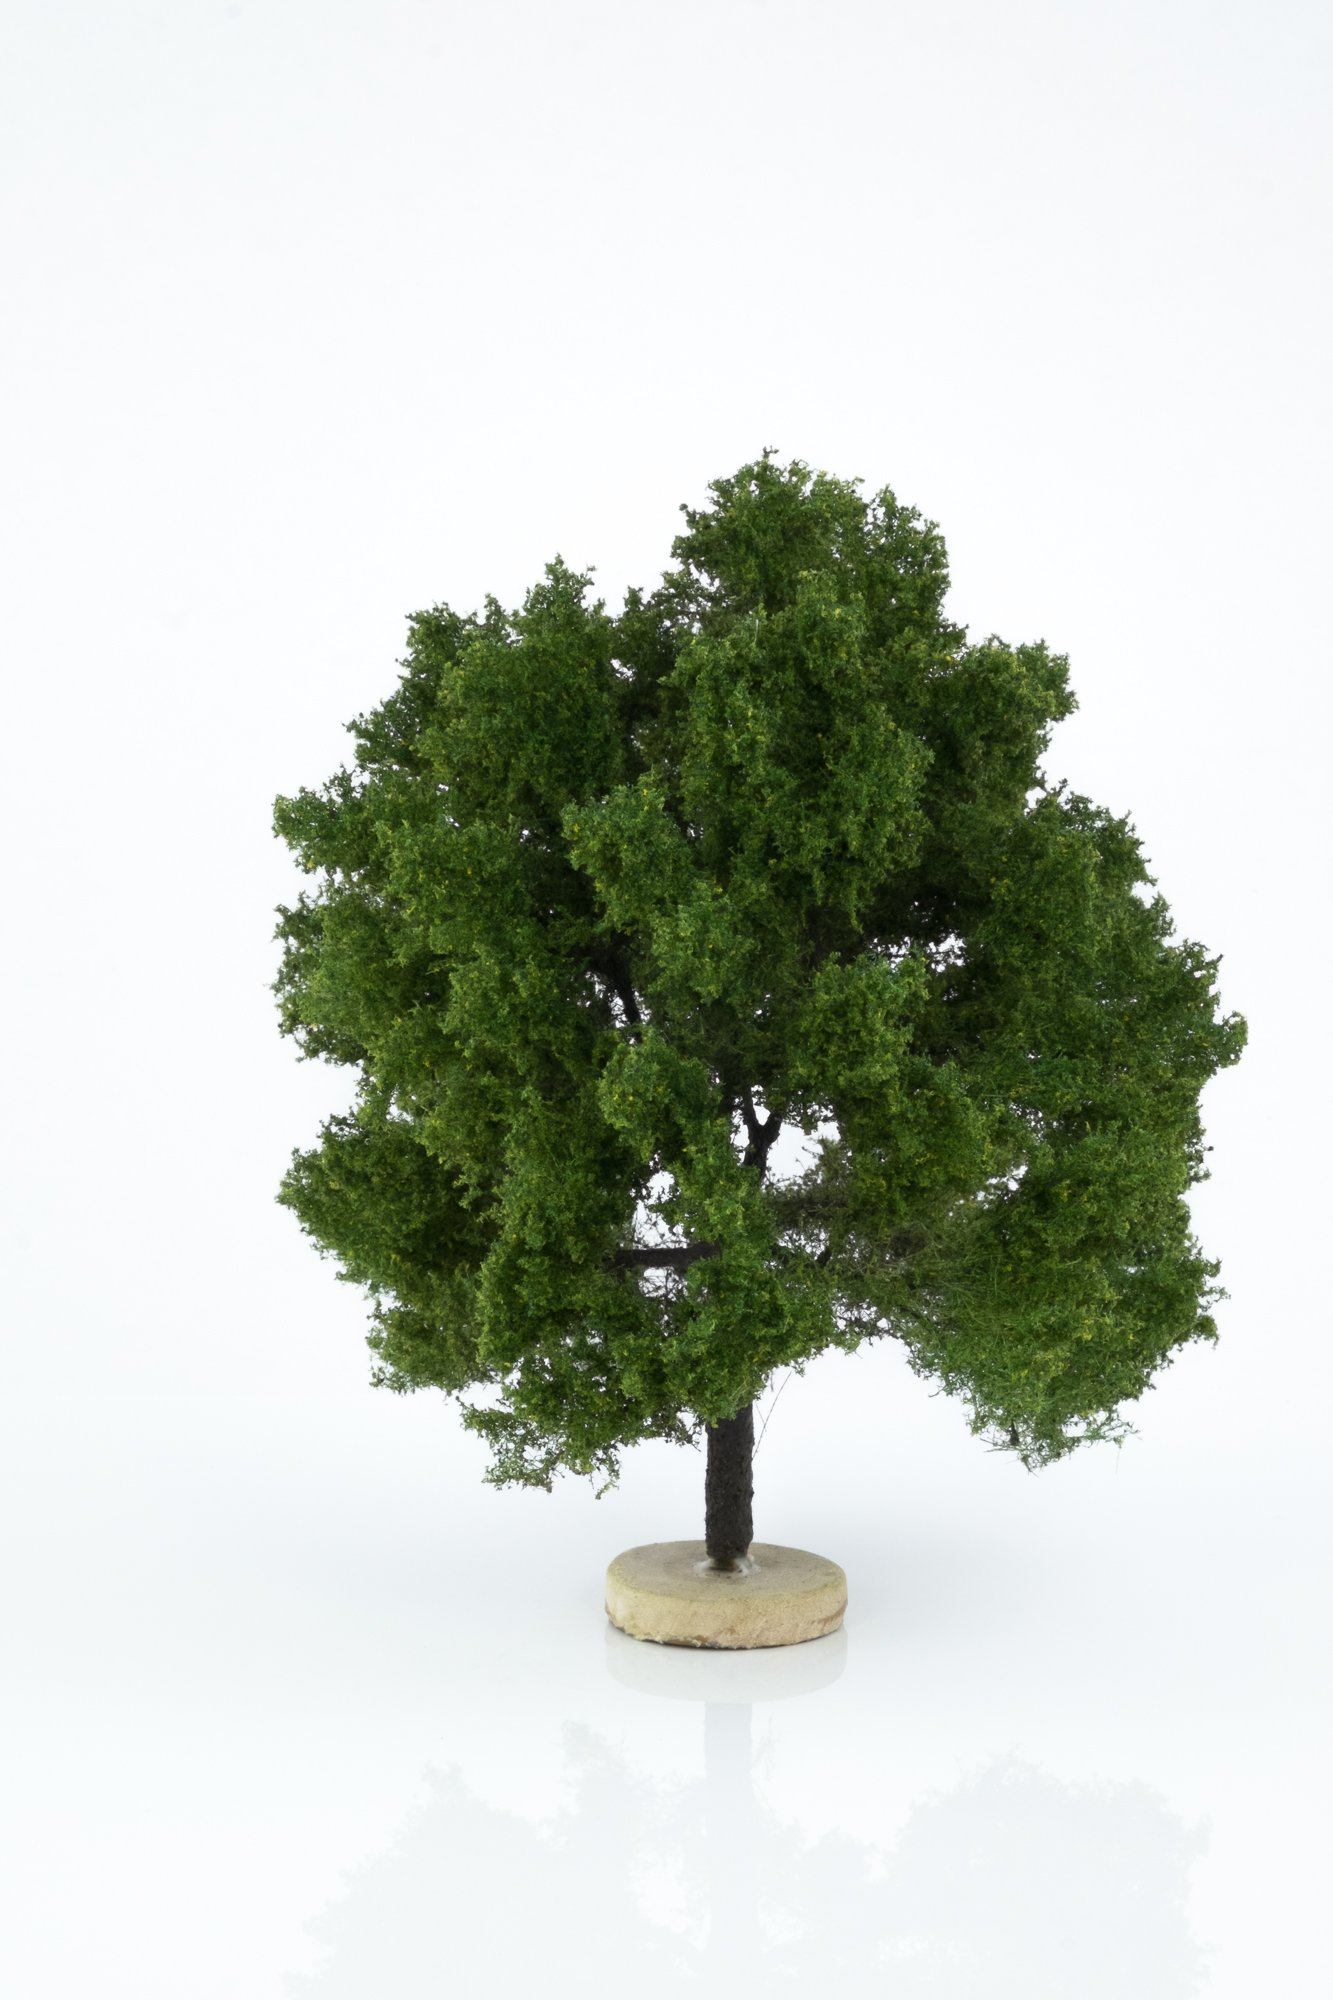 Hand-made, green, oak tree model. Size between 12 and 16 cm. Made from high quality model supplies by Primo Models.